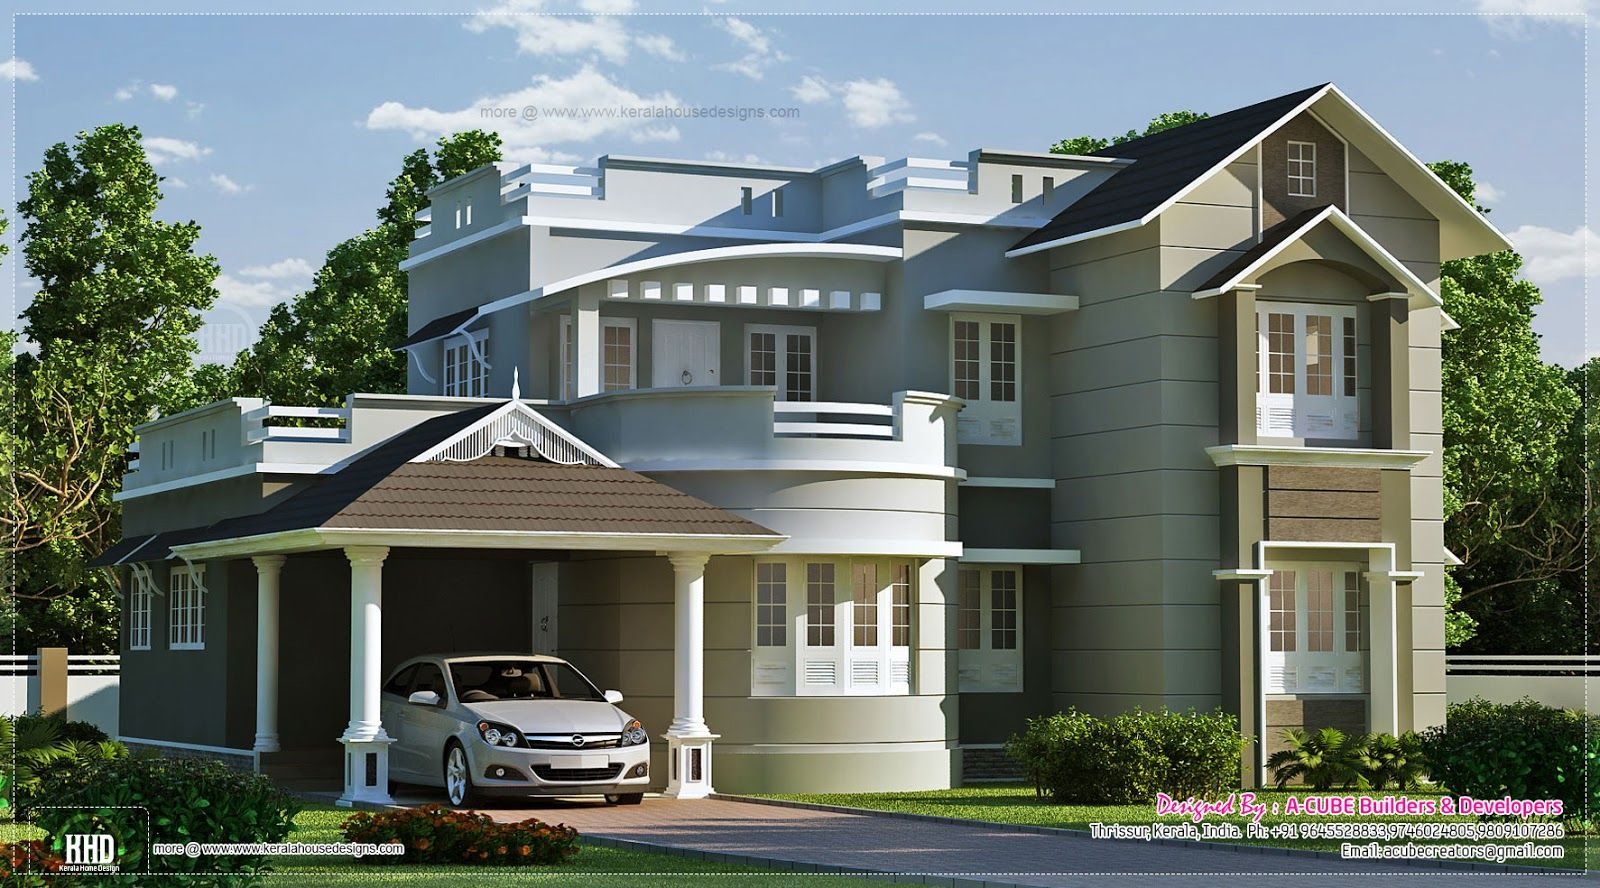 Simple Design Home Plans Architecturally Designed House Plans